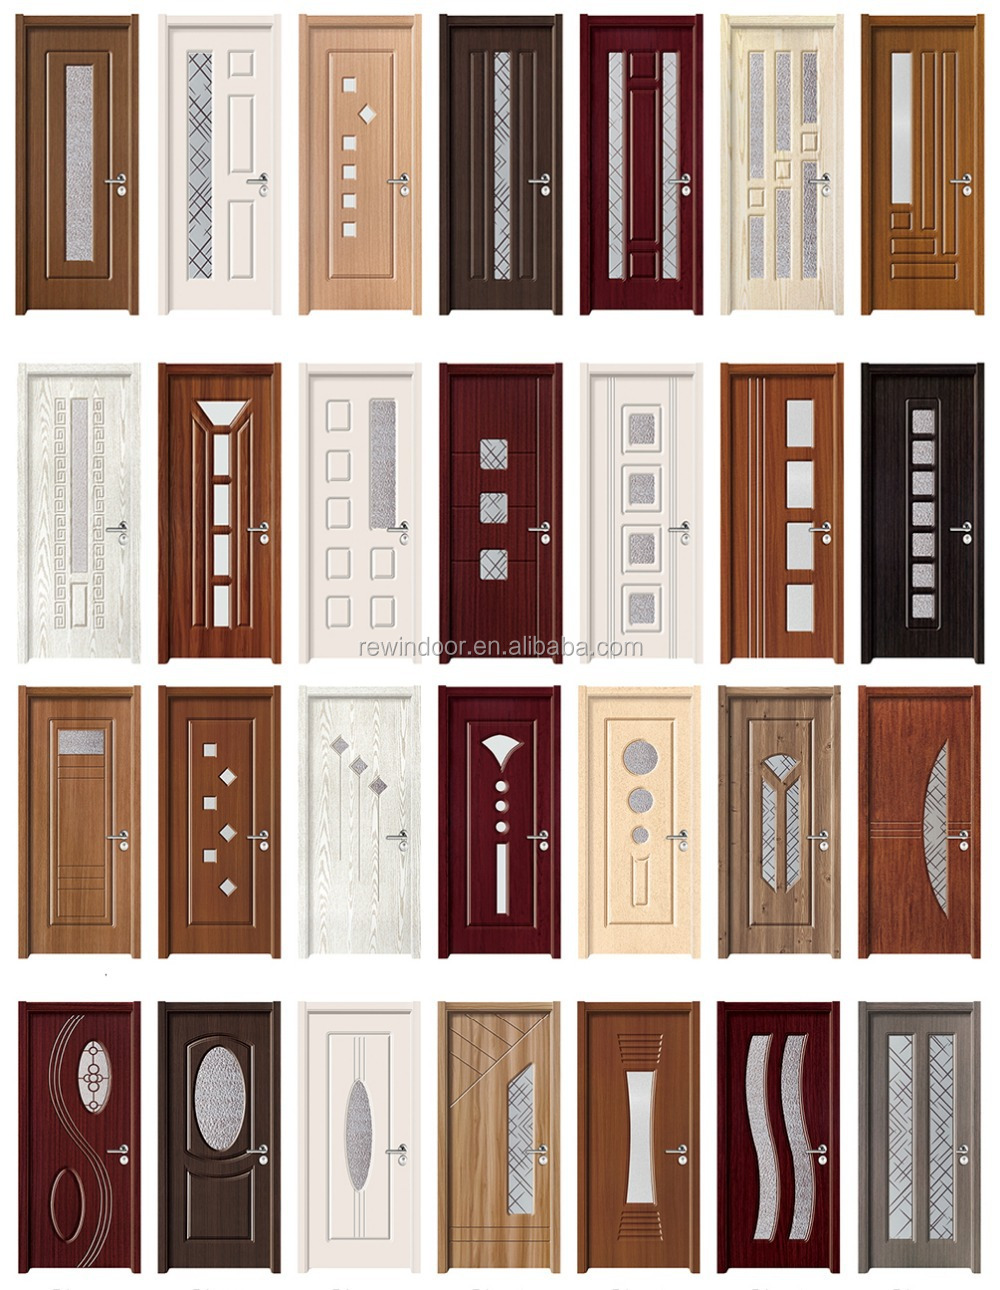 Bathroom Design Toilet Door : Bathroom pvc doors prices fiber door teak wood